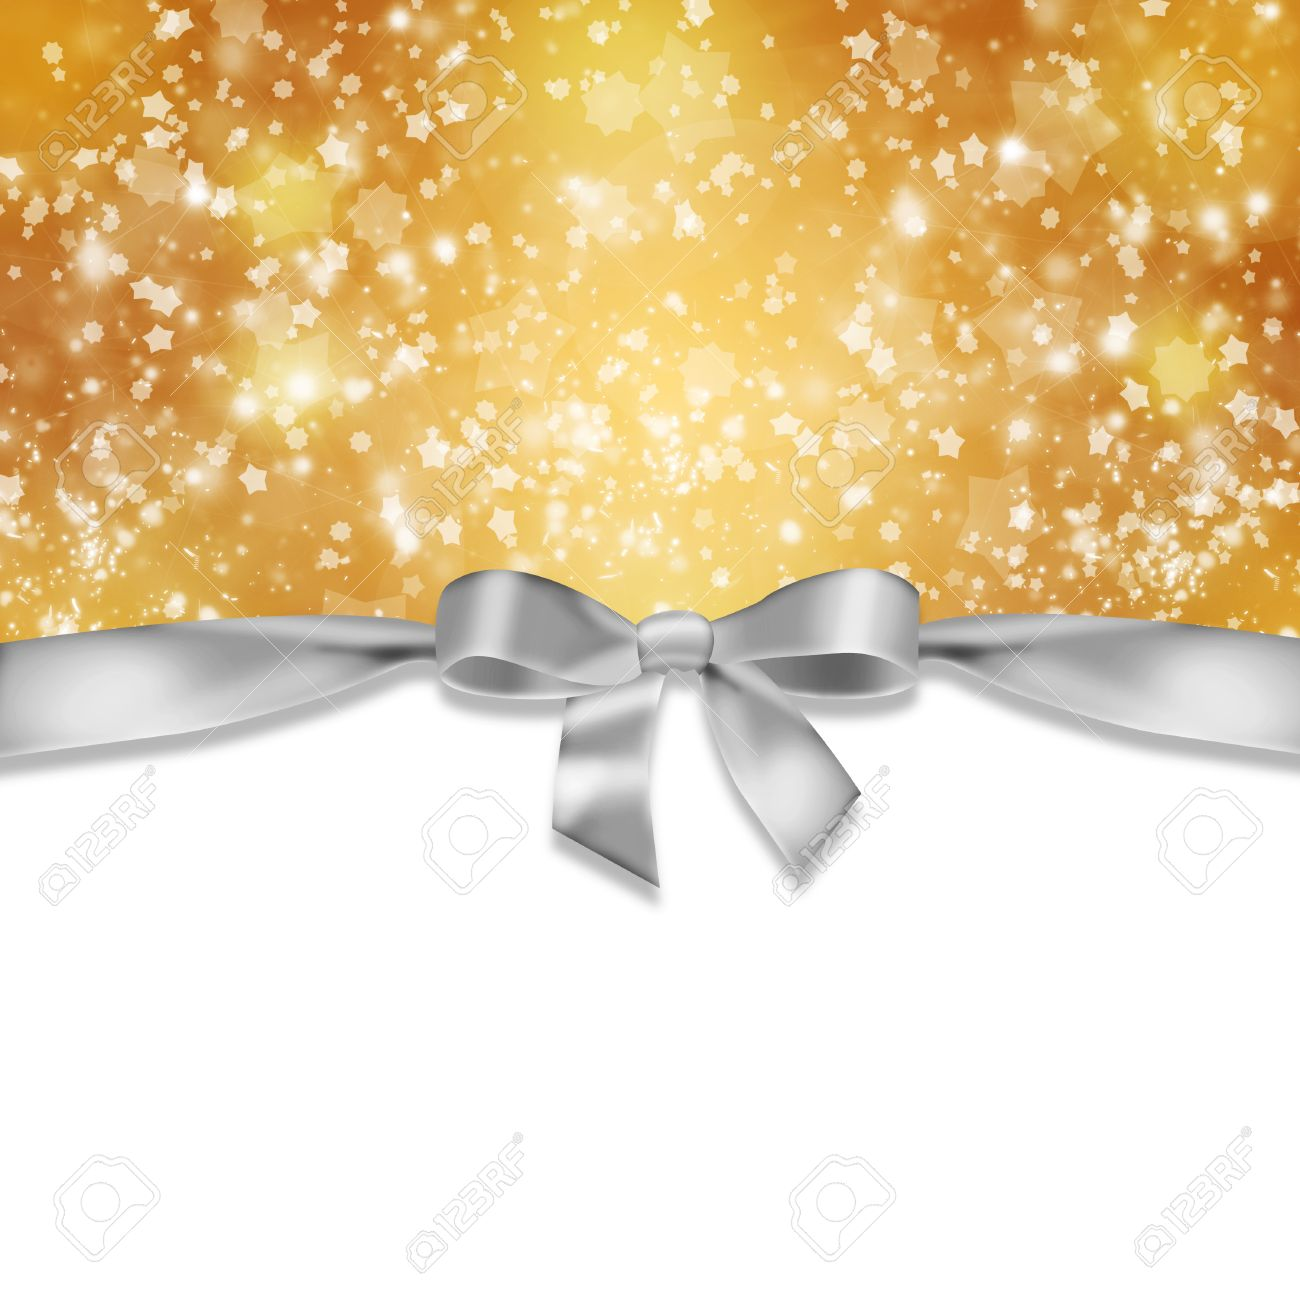 new year s background ribbon and snowflakes on abstract gold background stock photo 24488803